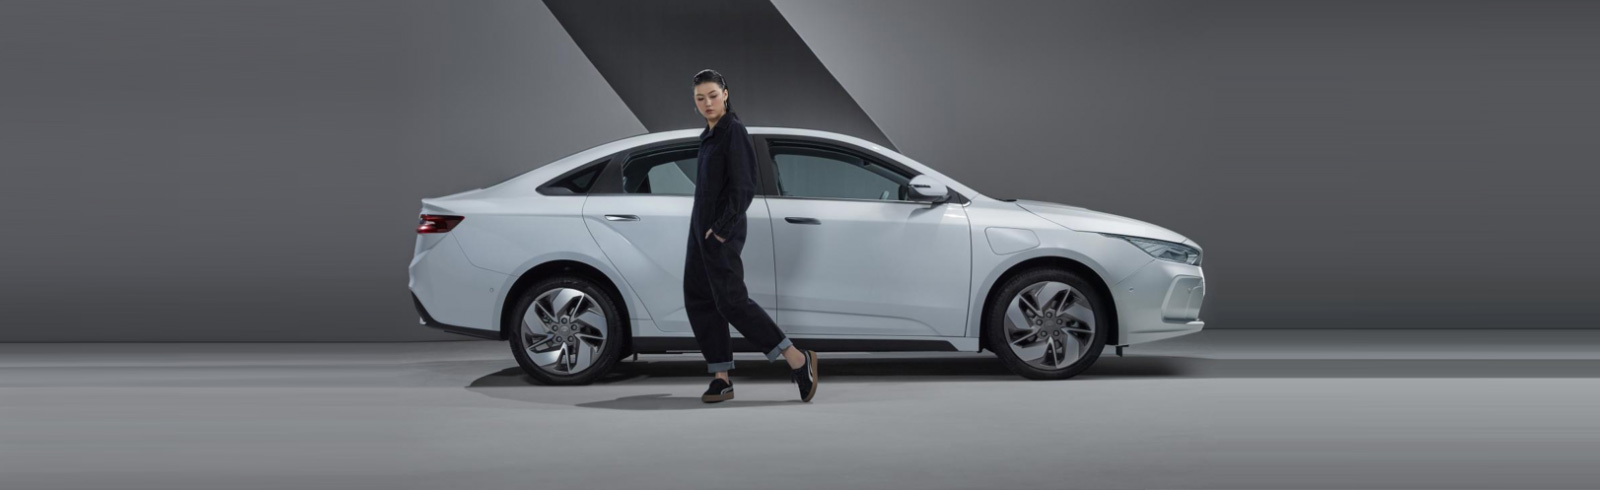 Tesla Model 3 competitor unveiled in China, enter the Geely GE11